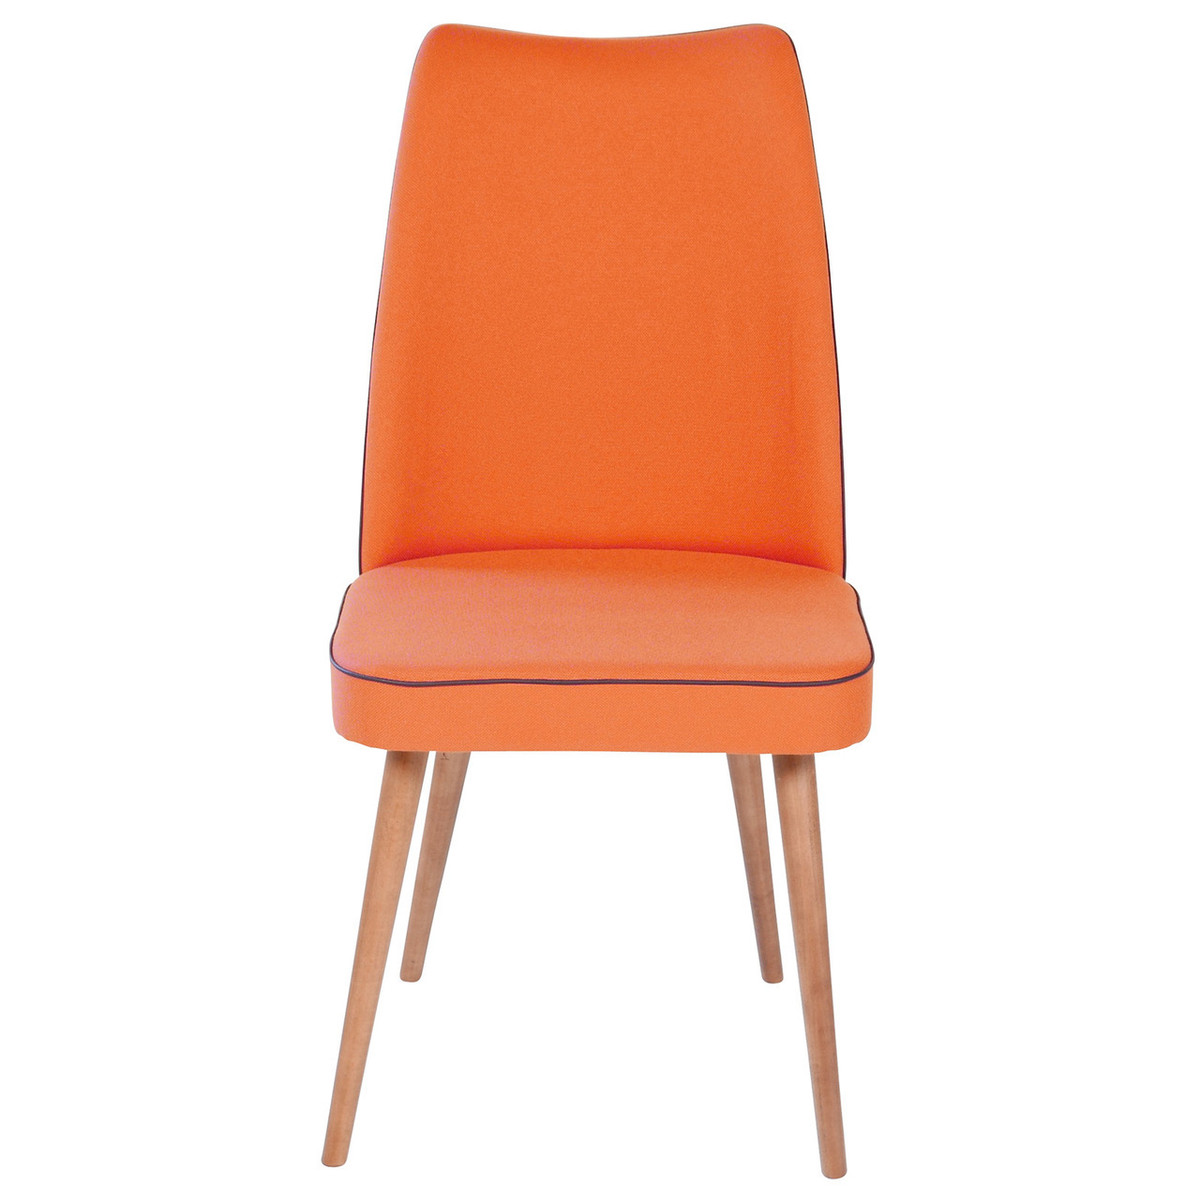 orange upholstered chair extreme gaming mid century modern dining with